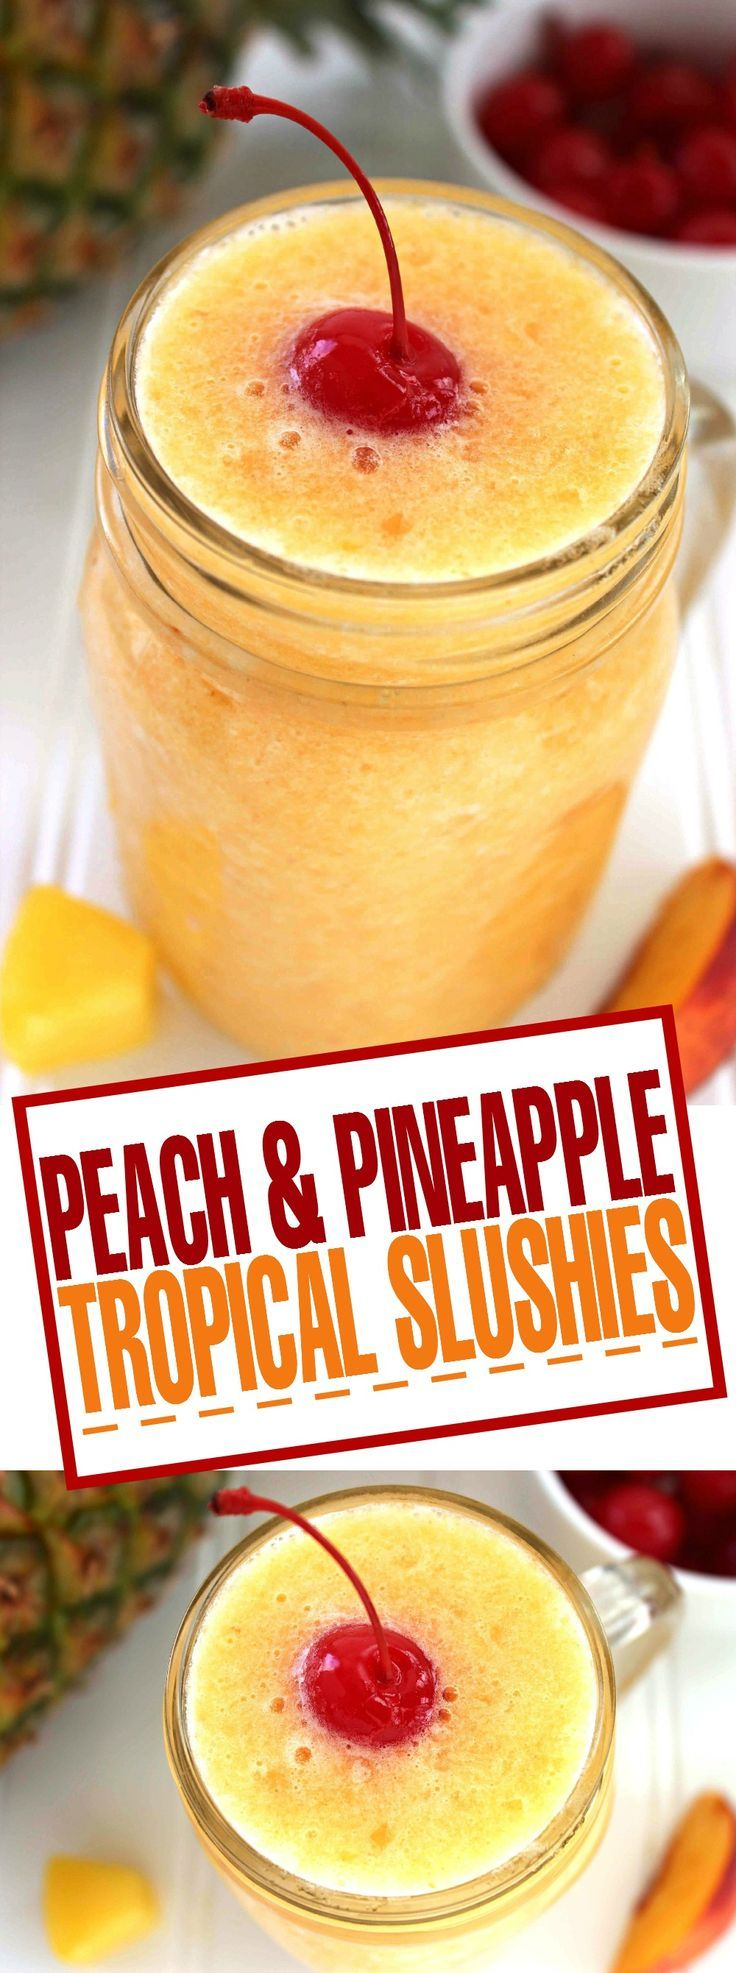 With summer on the way, these Peach & Pineapple Tropical Slushies are the perfect drink to help you cool down.